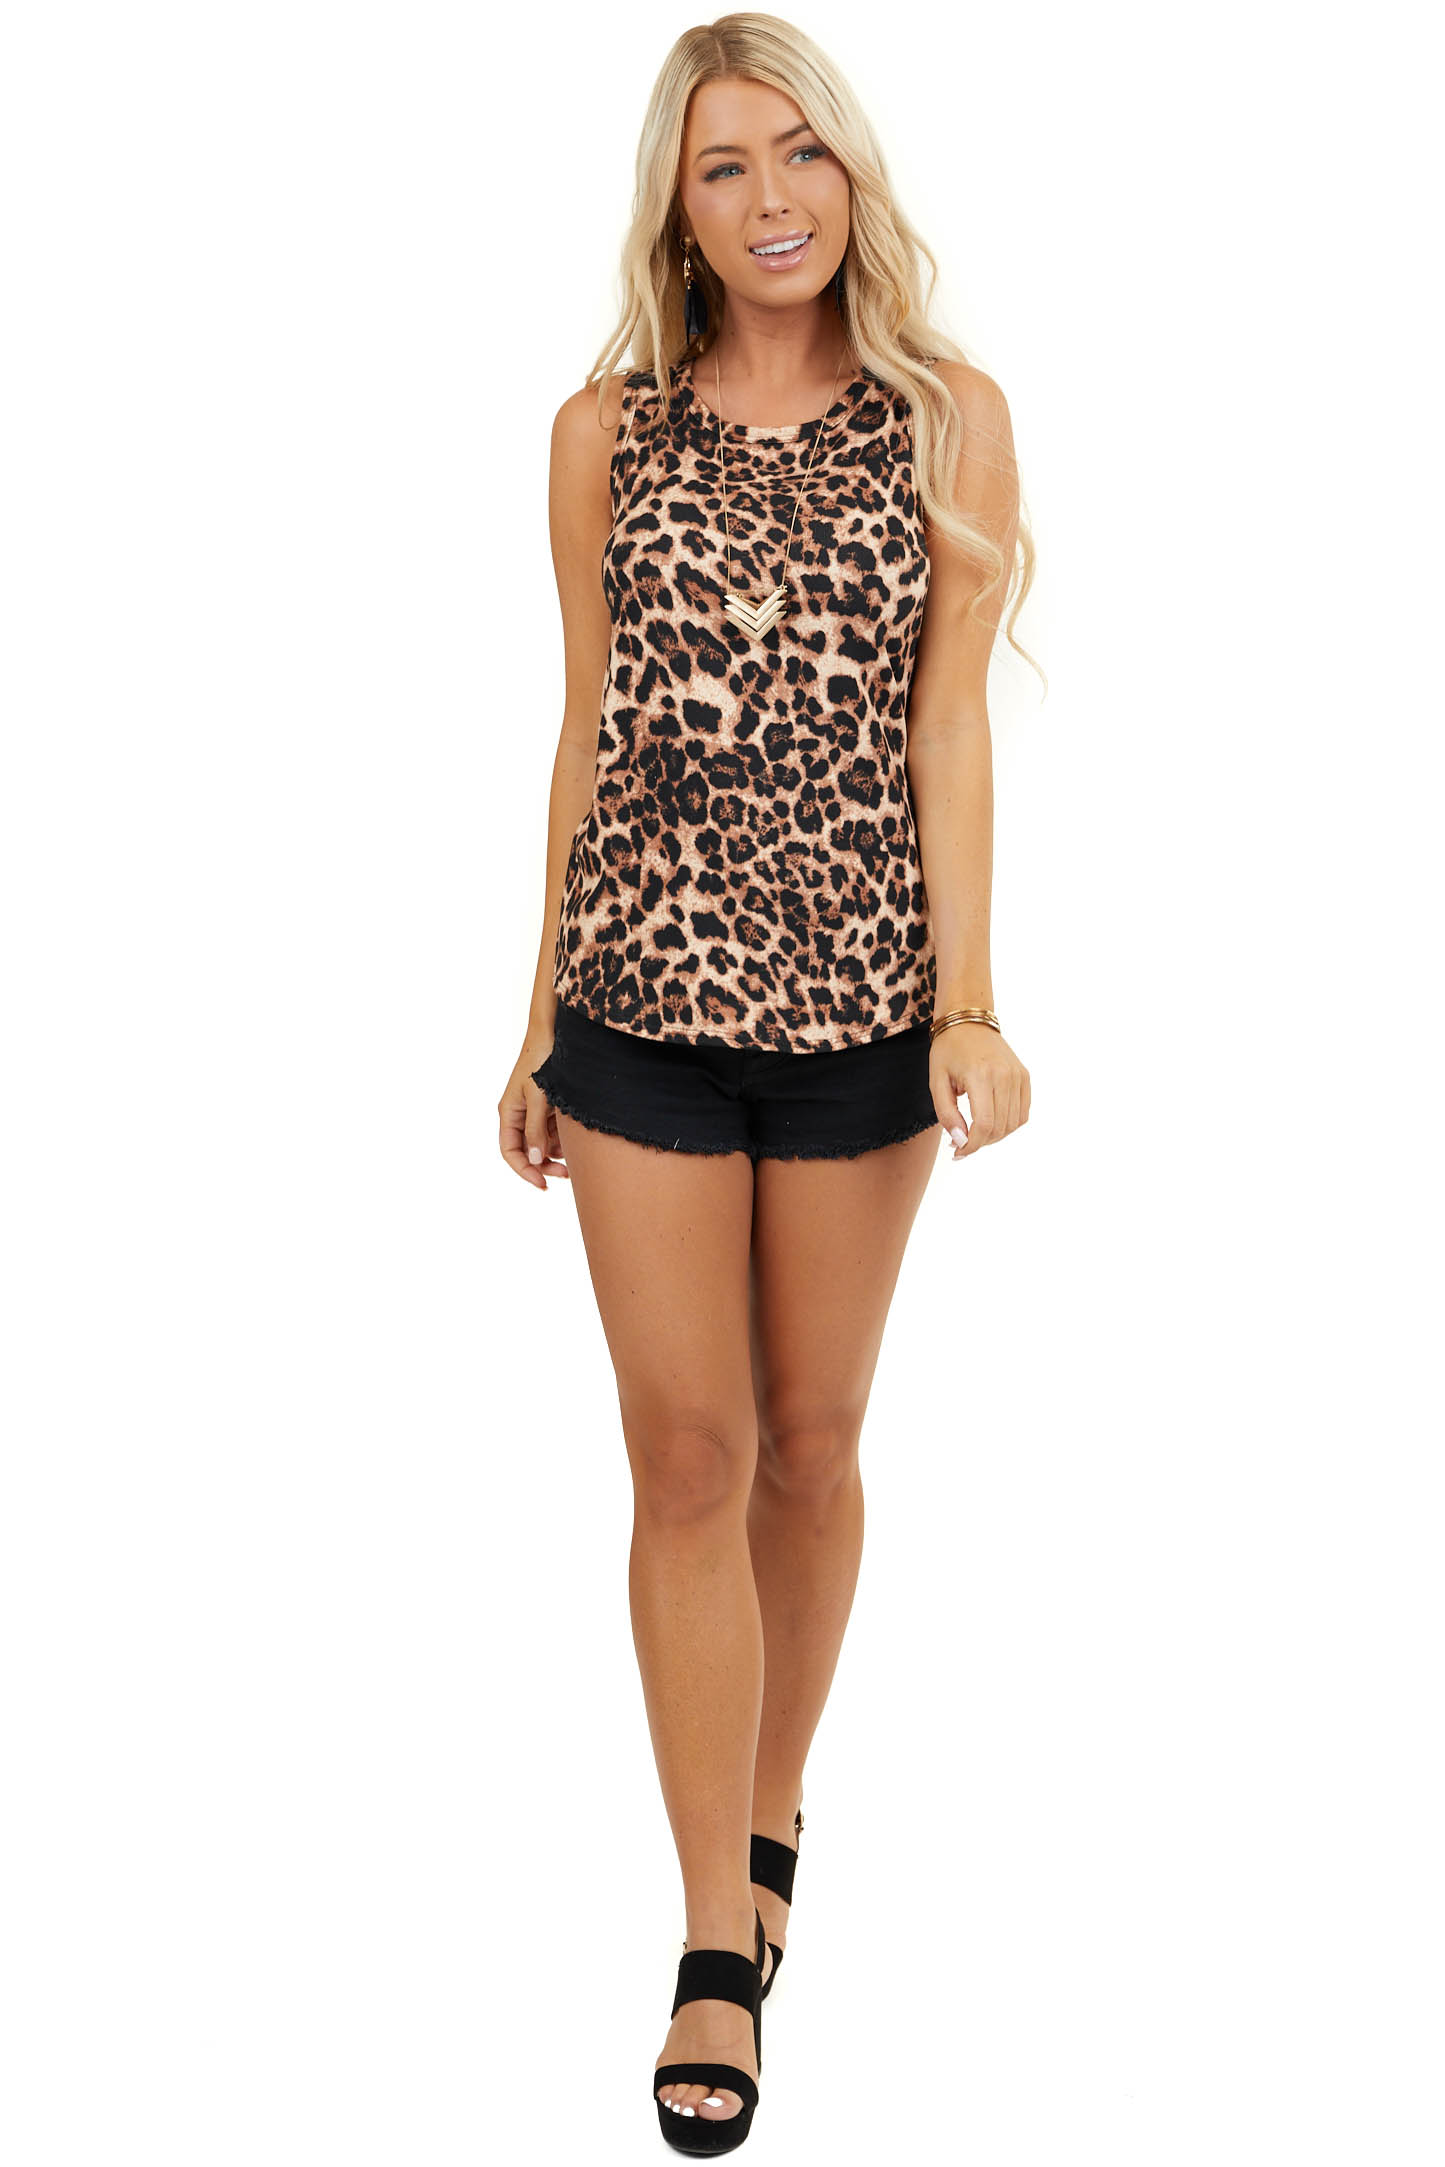 Desert Sand and Black Leopard Print Stretchy Knit Tank Top